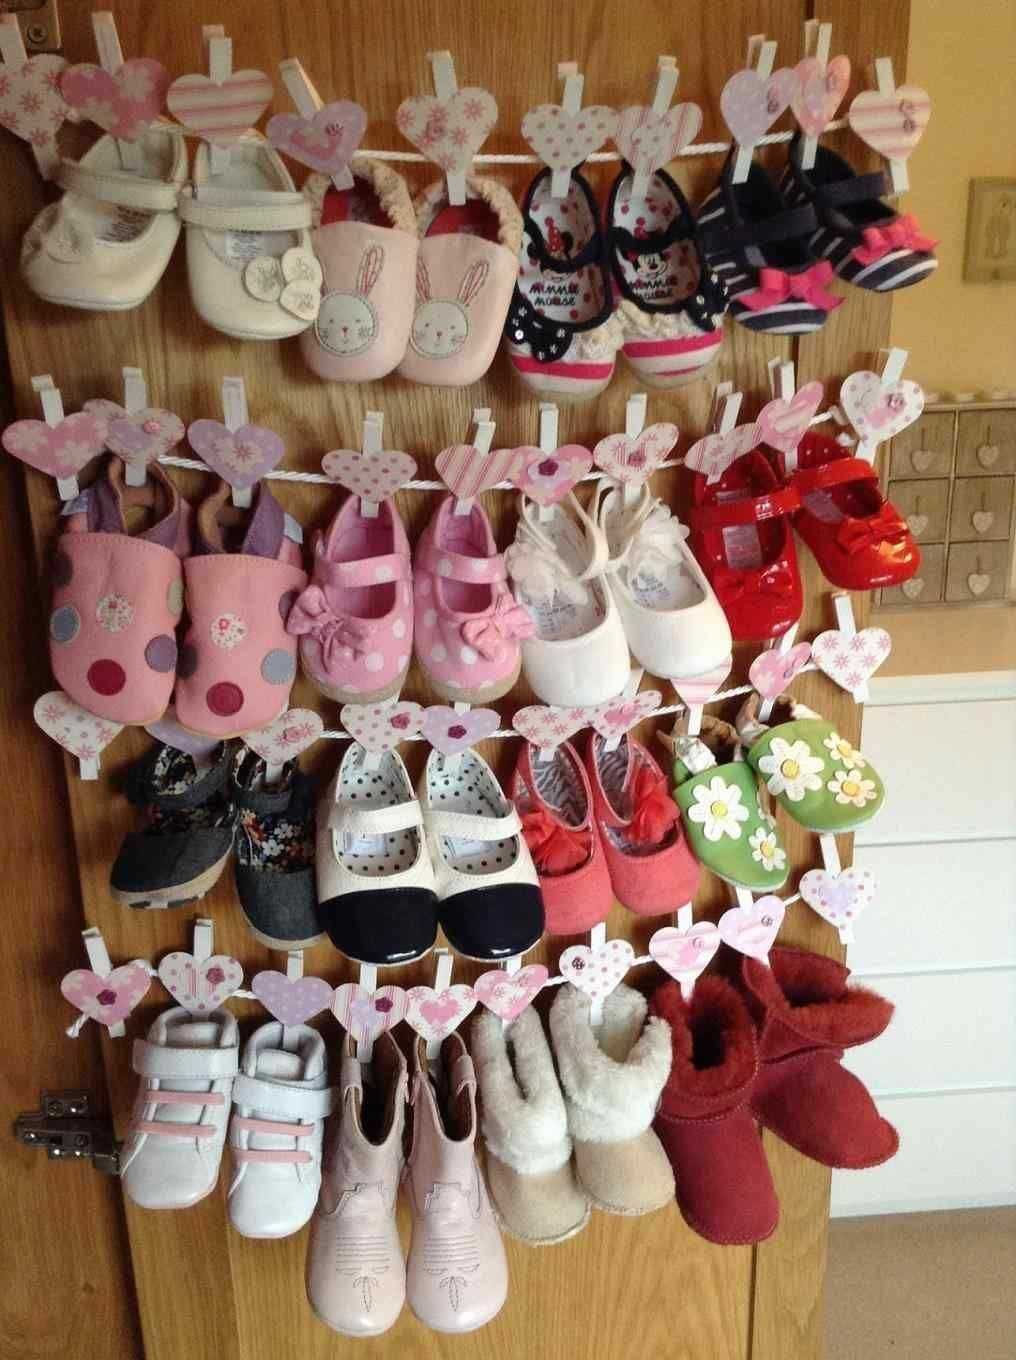 27 Awesome Shoe Rack Ideas Concepts For Storing Your Shoes Closet Entryway Diy Rotating Bedro Baby Organization Kids Shoe Organization Baby Shoe Storage